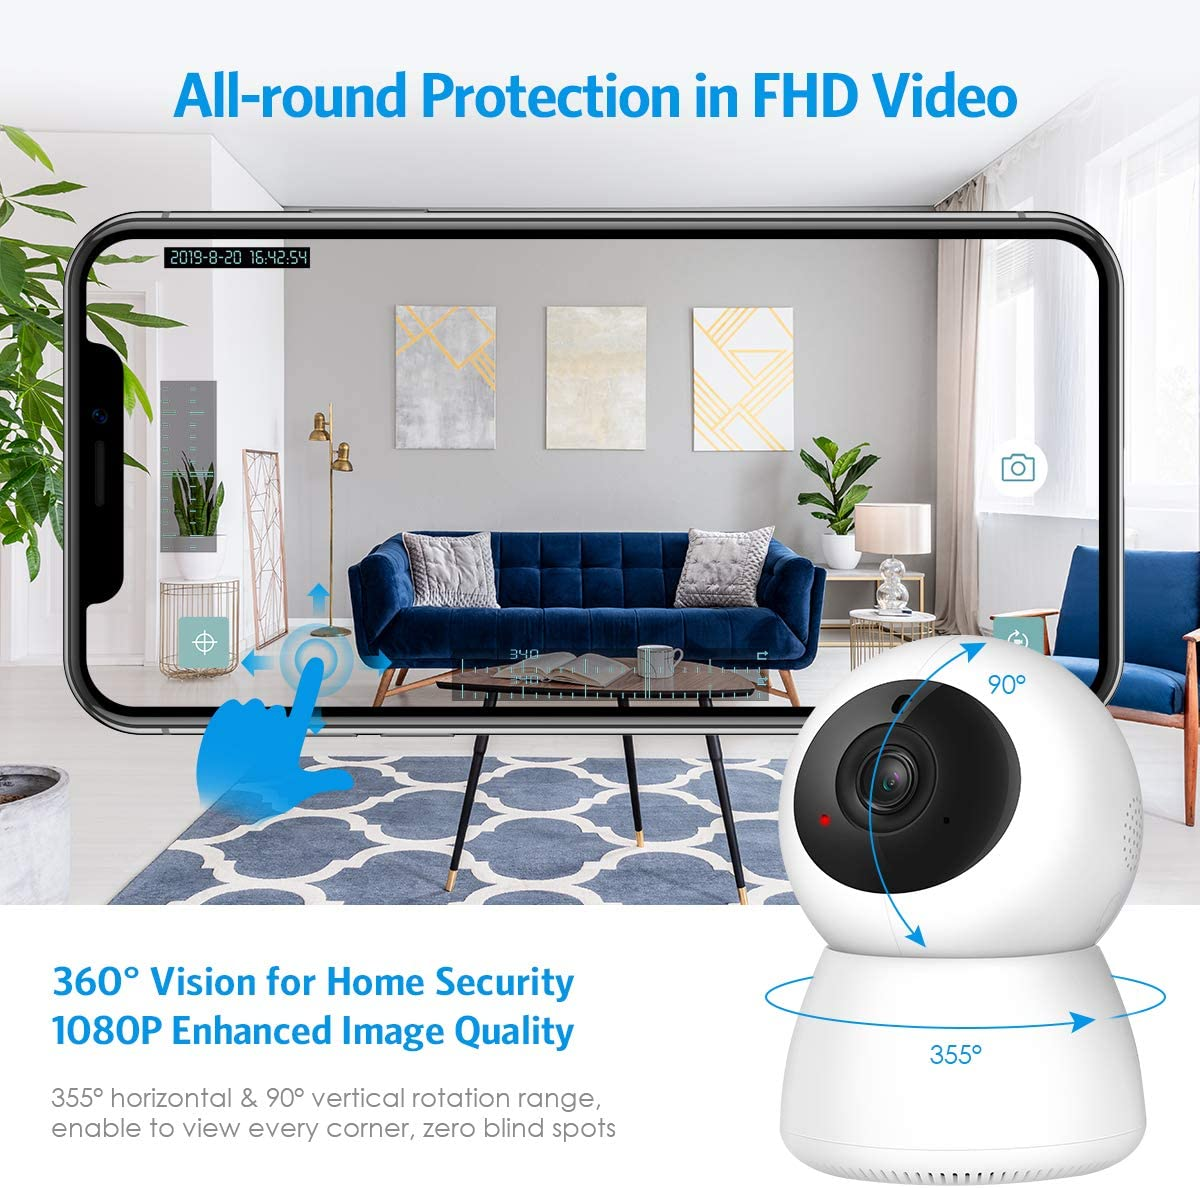 2019 NEW Criacr 1080p WiFi Home Security Camera, Indoor Smart Surveillance Pet Baby Monitor, Zoom IP Camera, Night Vision, Ptz, Two-Way Audio, Pan, Tilt, Remote Viewing for Elder, Home, Shop, Office